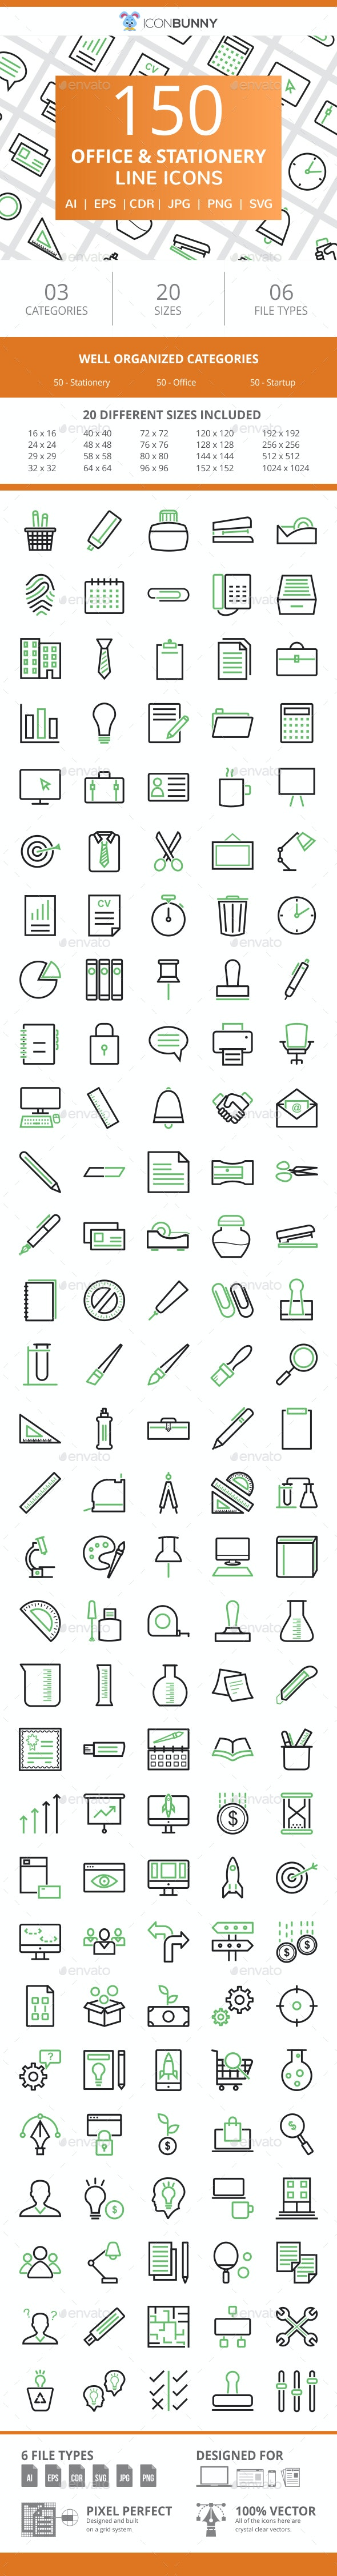 150 Office & Stationery Line Green & Black Icons - Icons